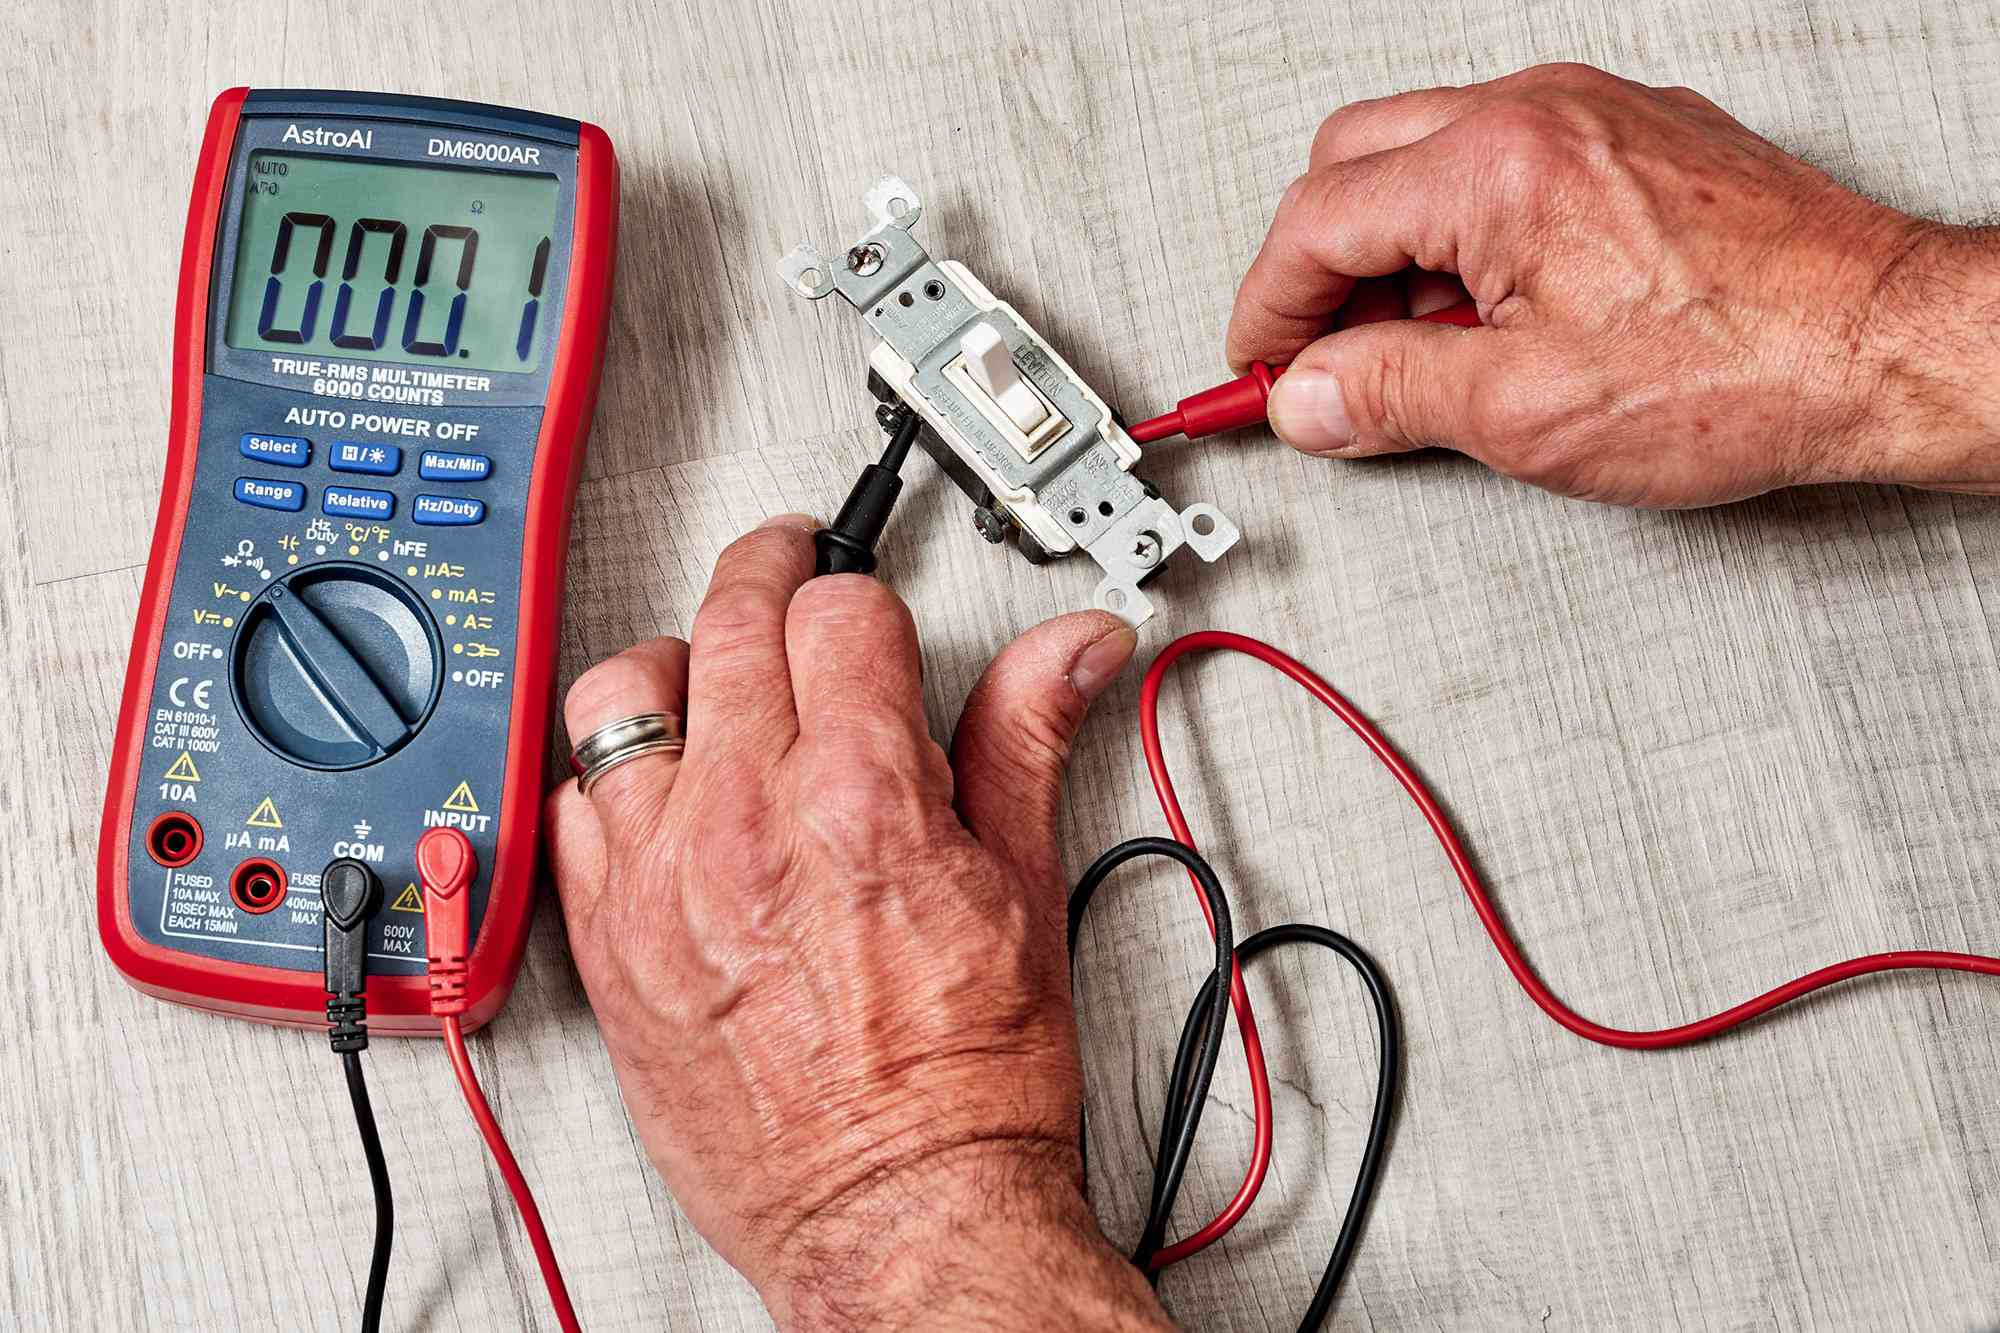 Wires clipped to continuity tester and common screw terminal touching the tester probe